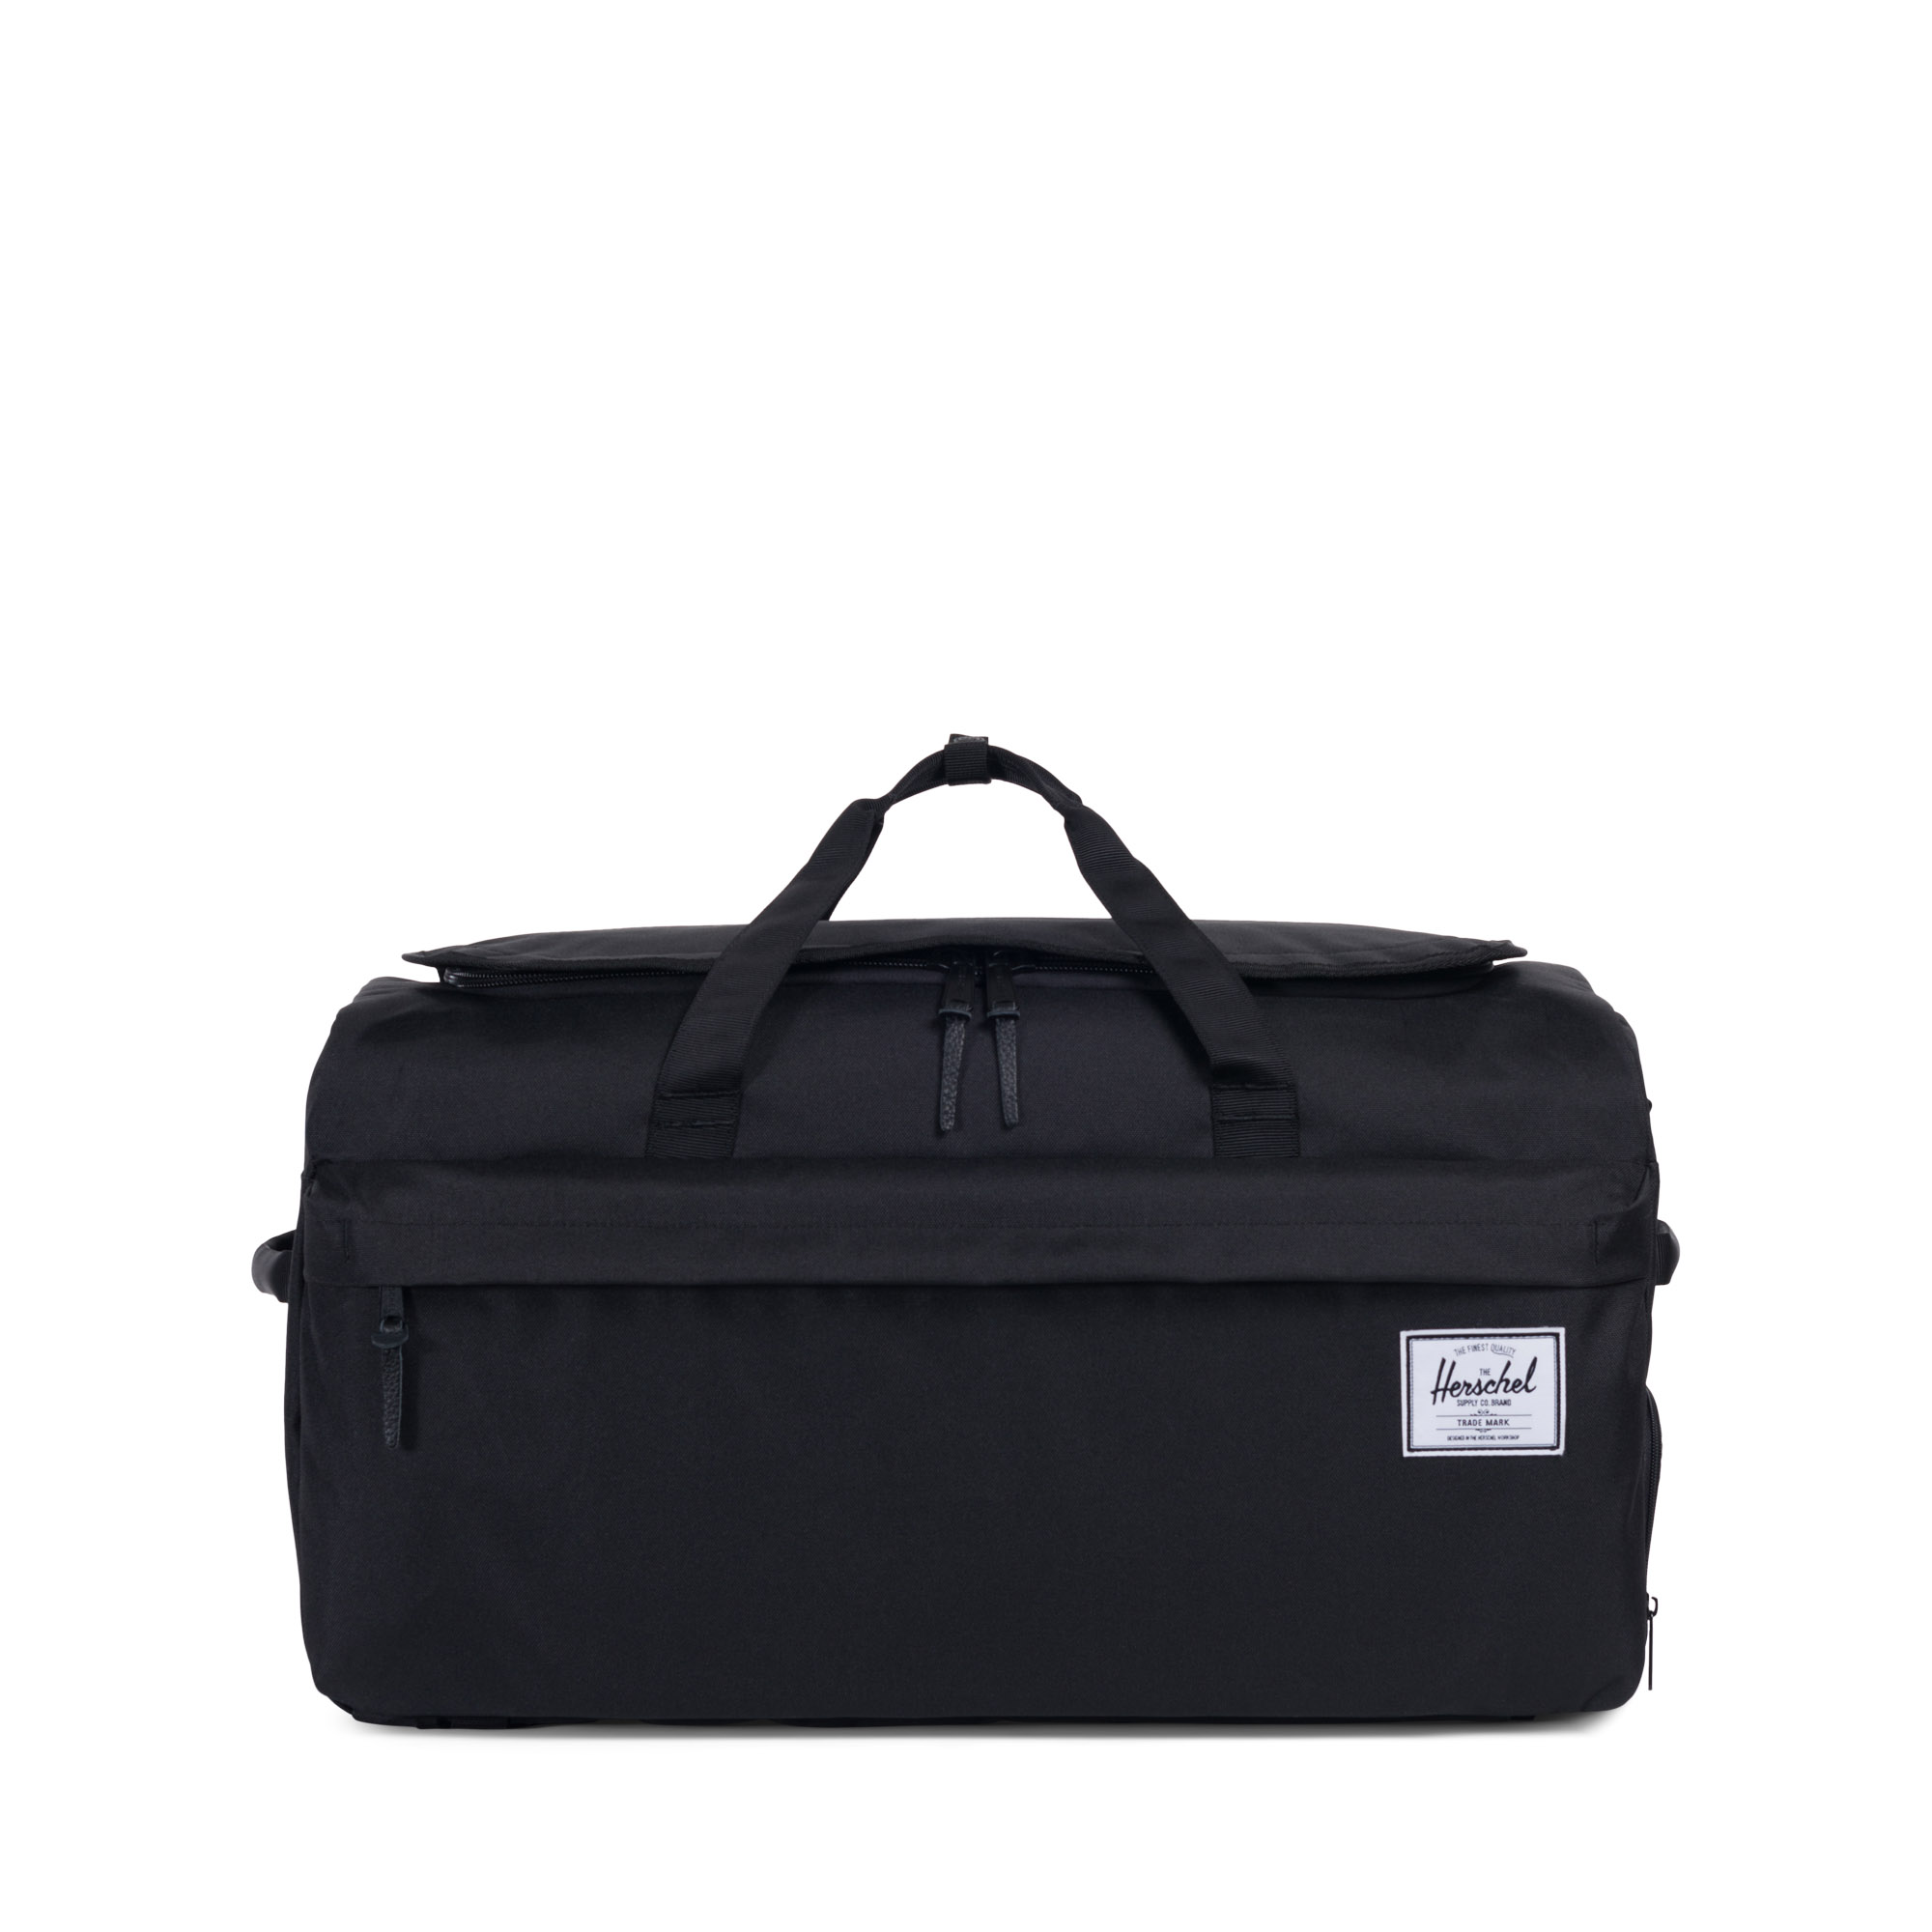 e0beda787a0a Outfitter Luggage